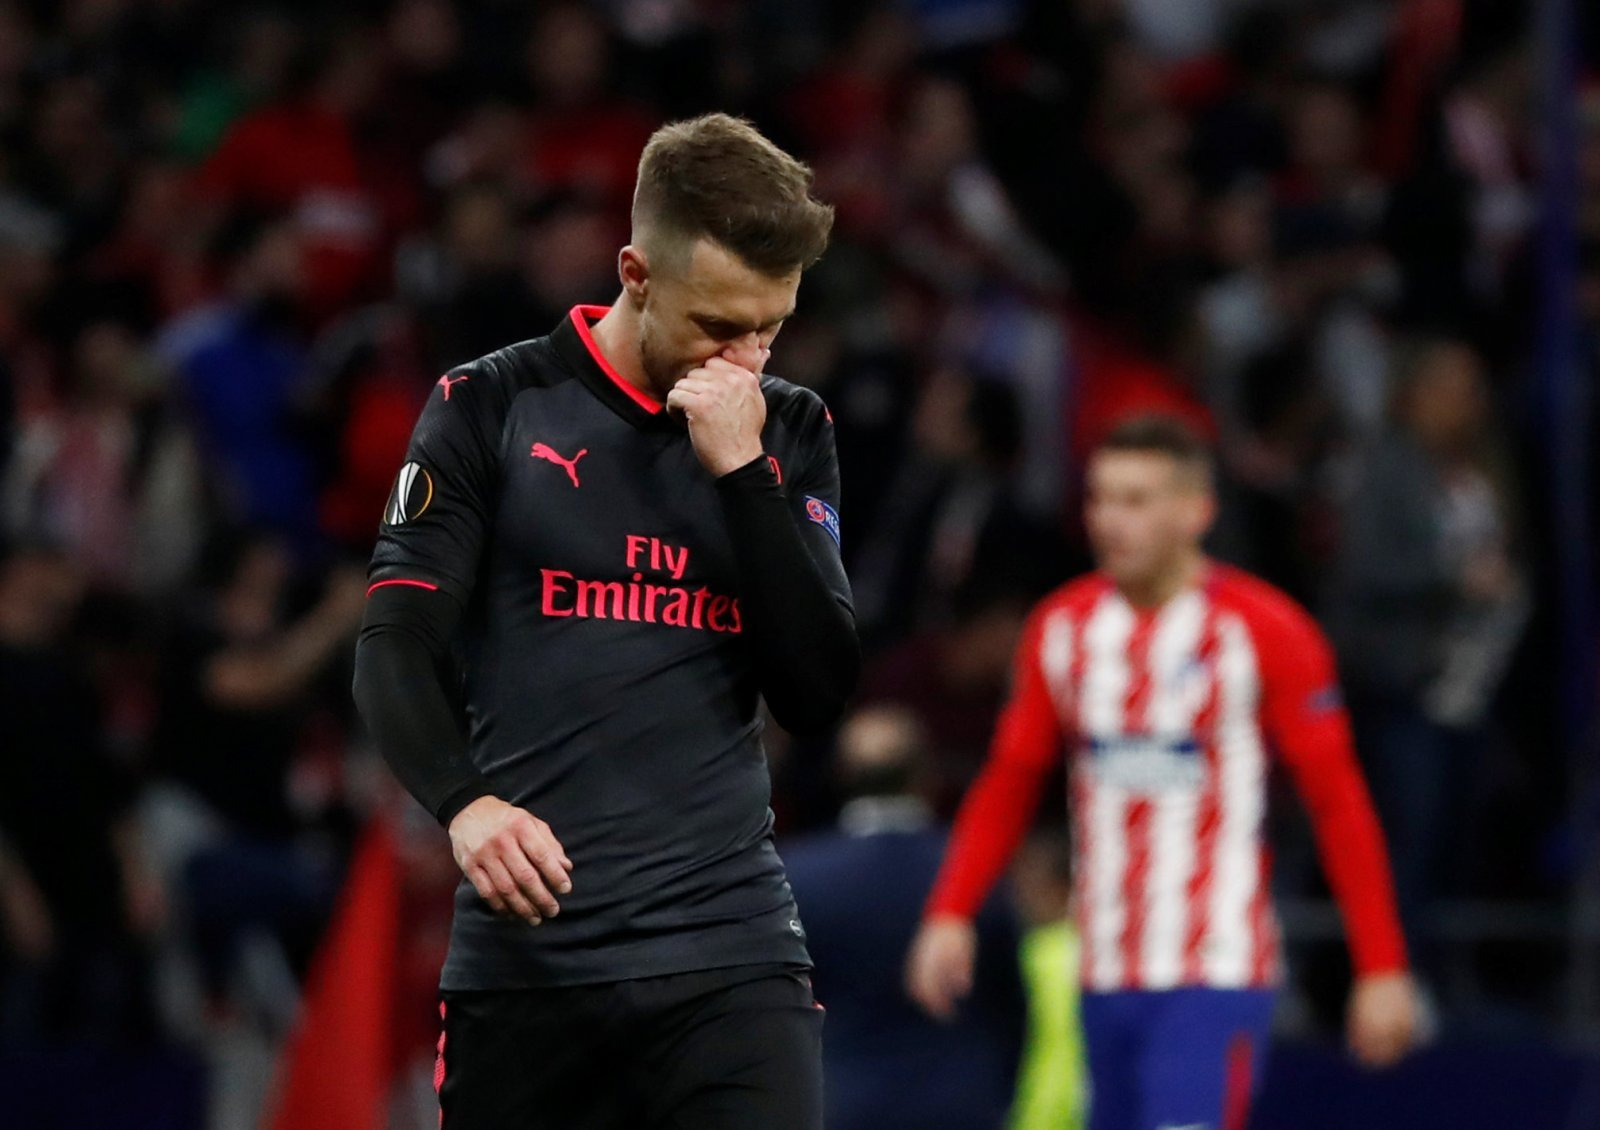 Aaron Ramsey's contract saga shows the same old problems remain at Arsenal